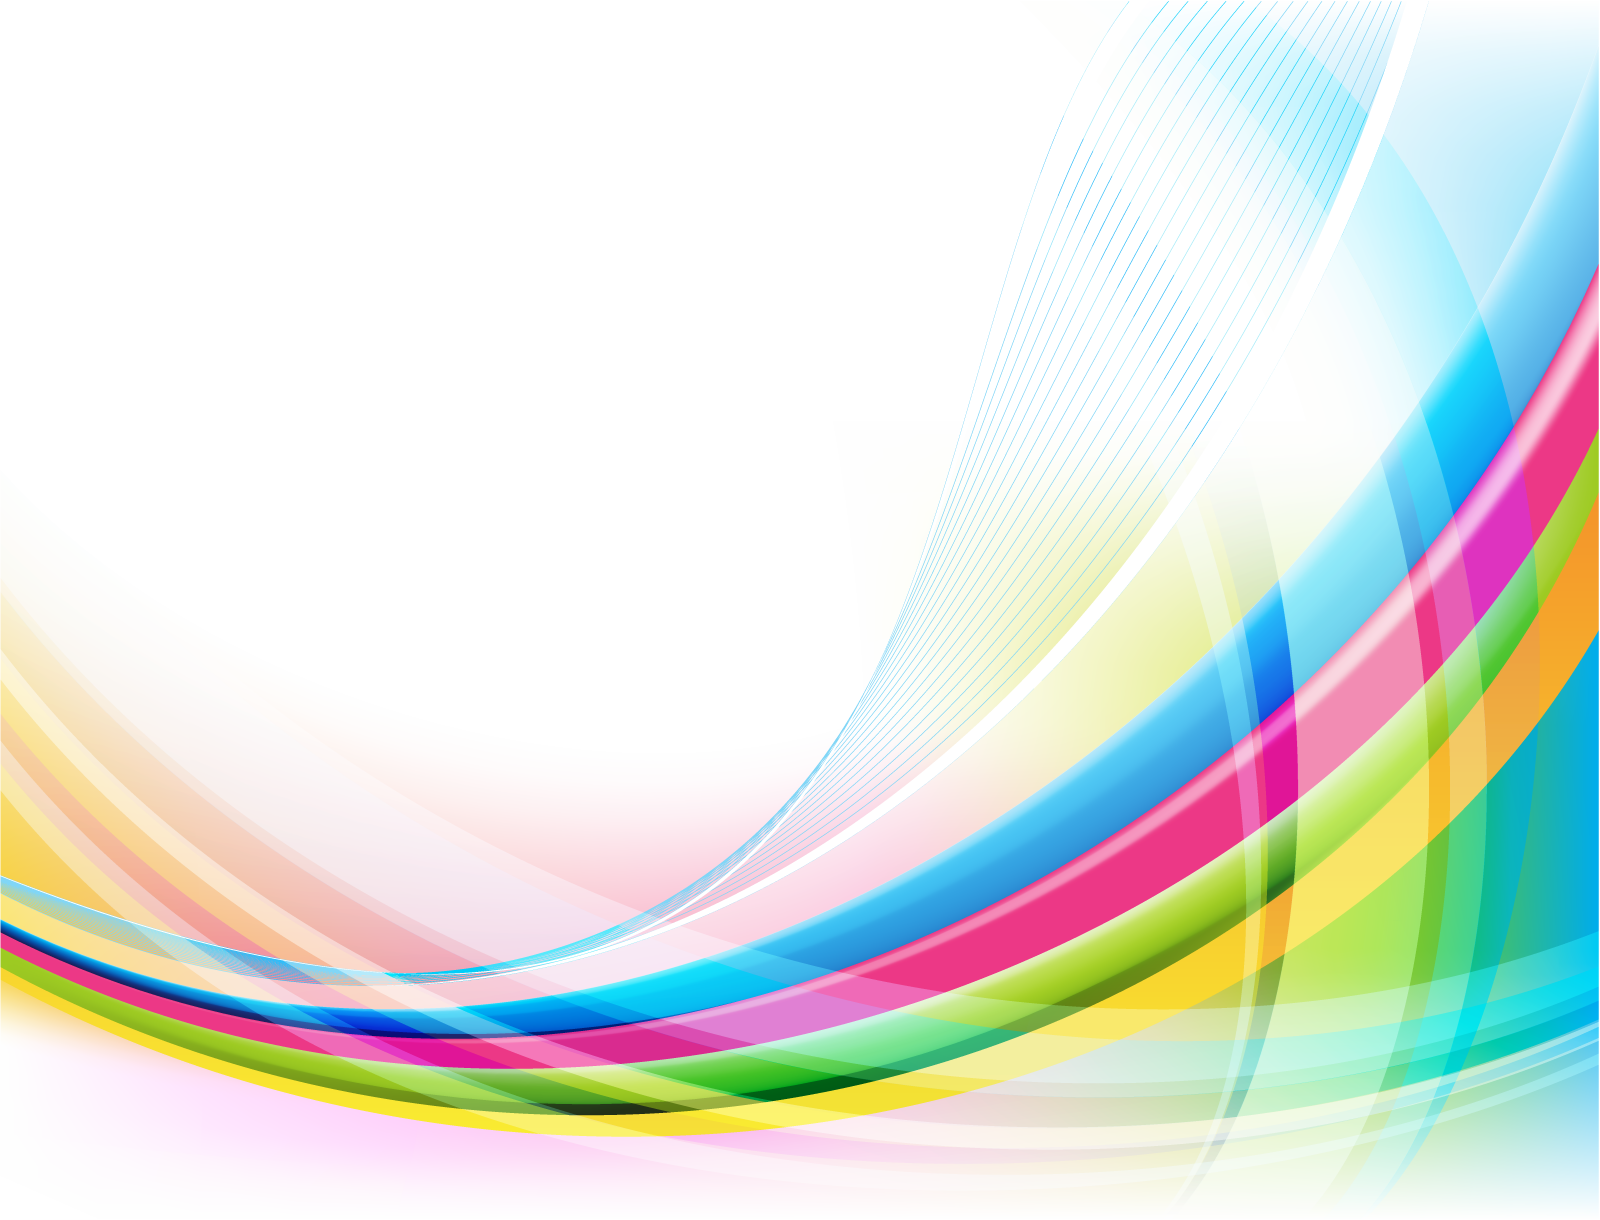 Image Title Colorful Backgrounds Abstract Free Desktop Wallpaper